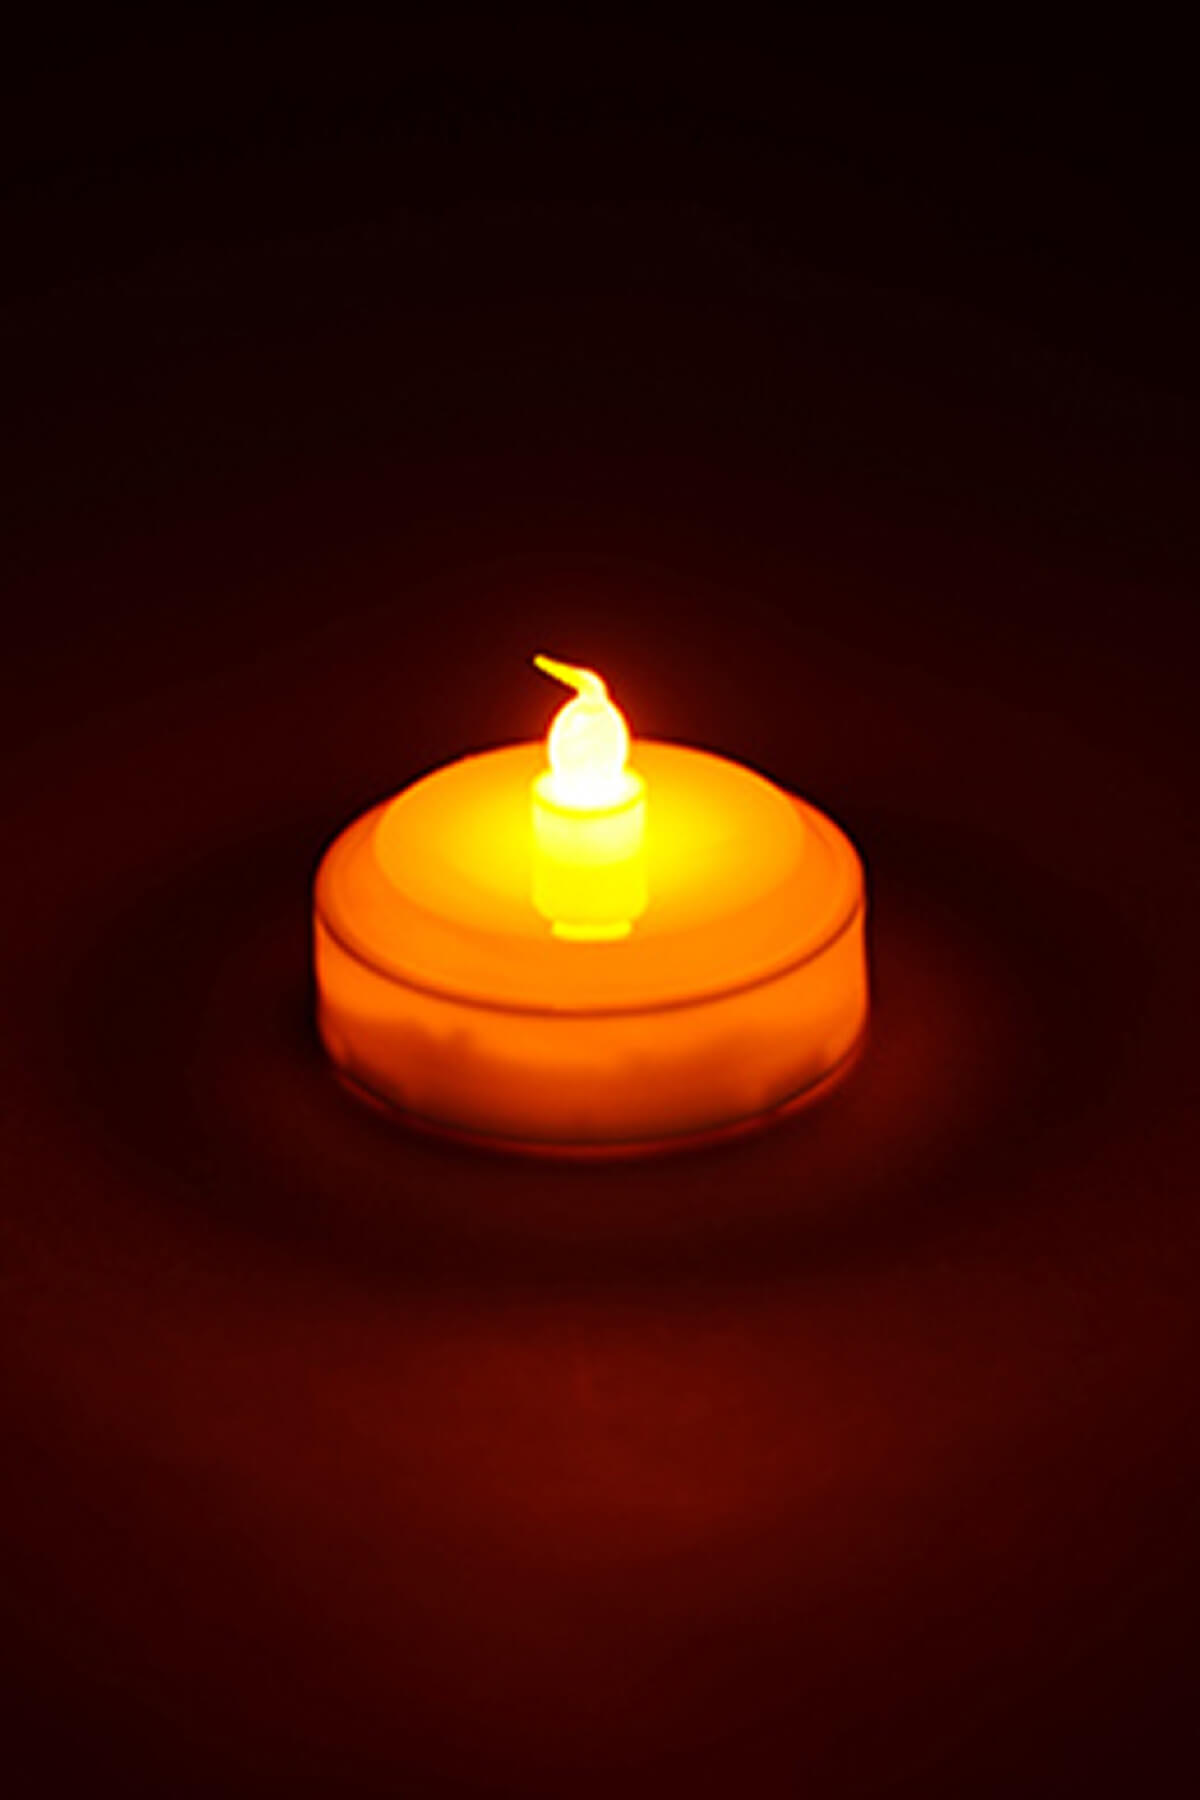 LED Tealight Battery Operated 2.5x1.75in